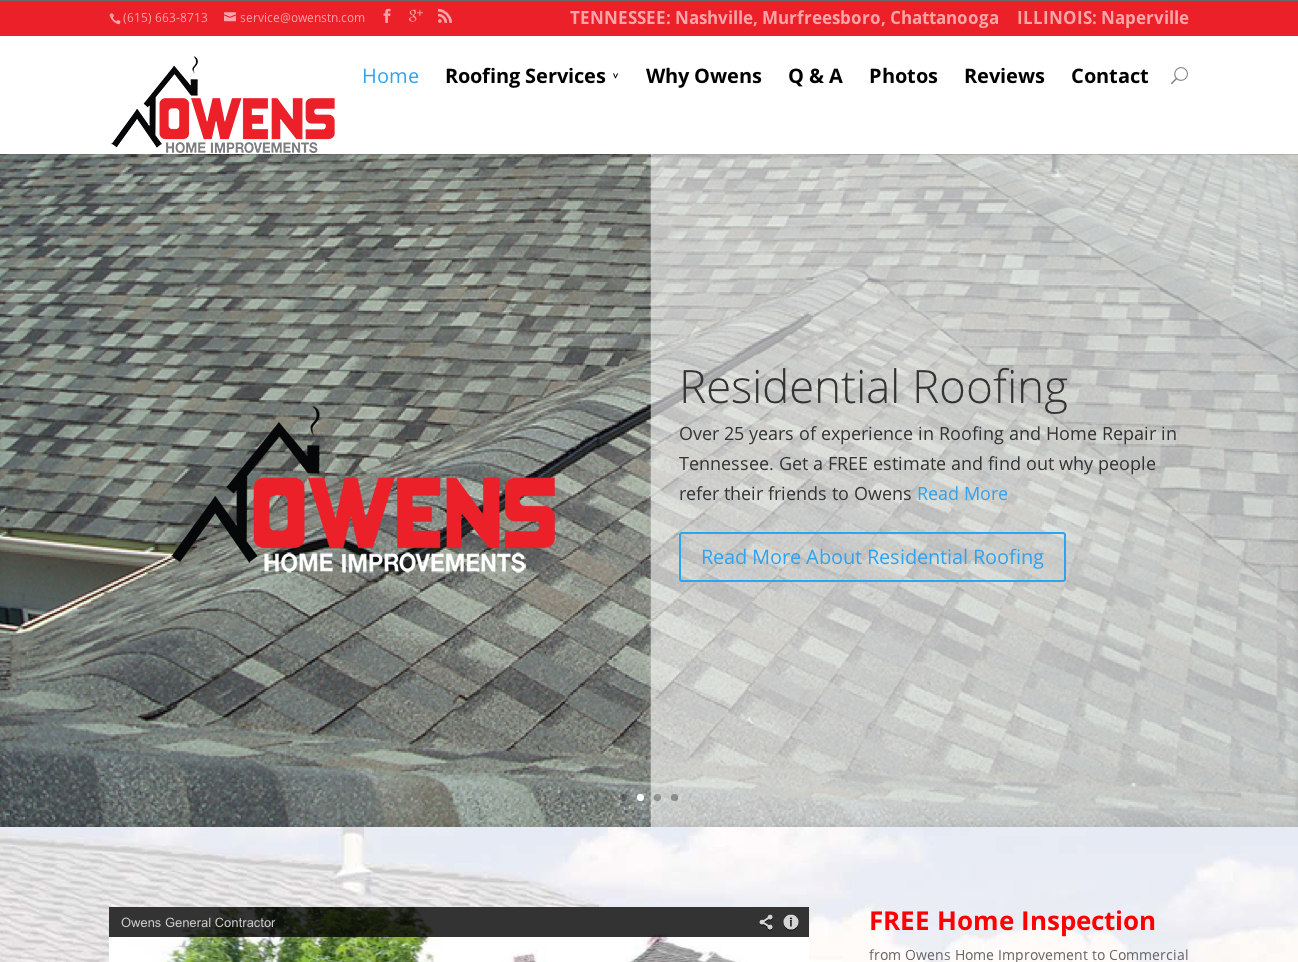 Owens Home Improvements